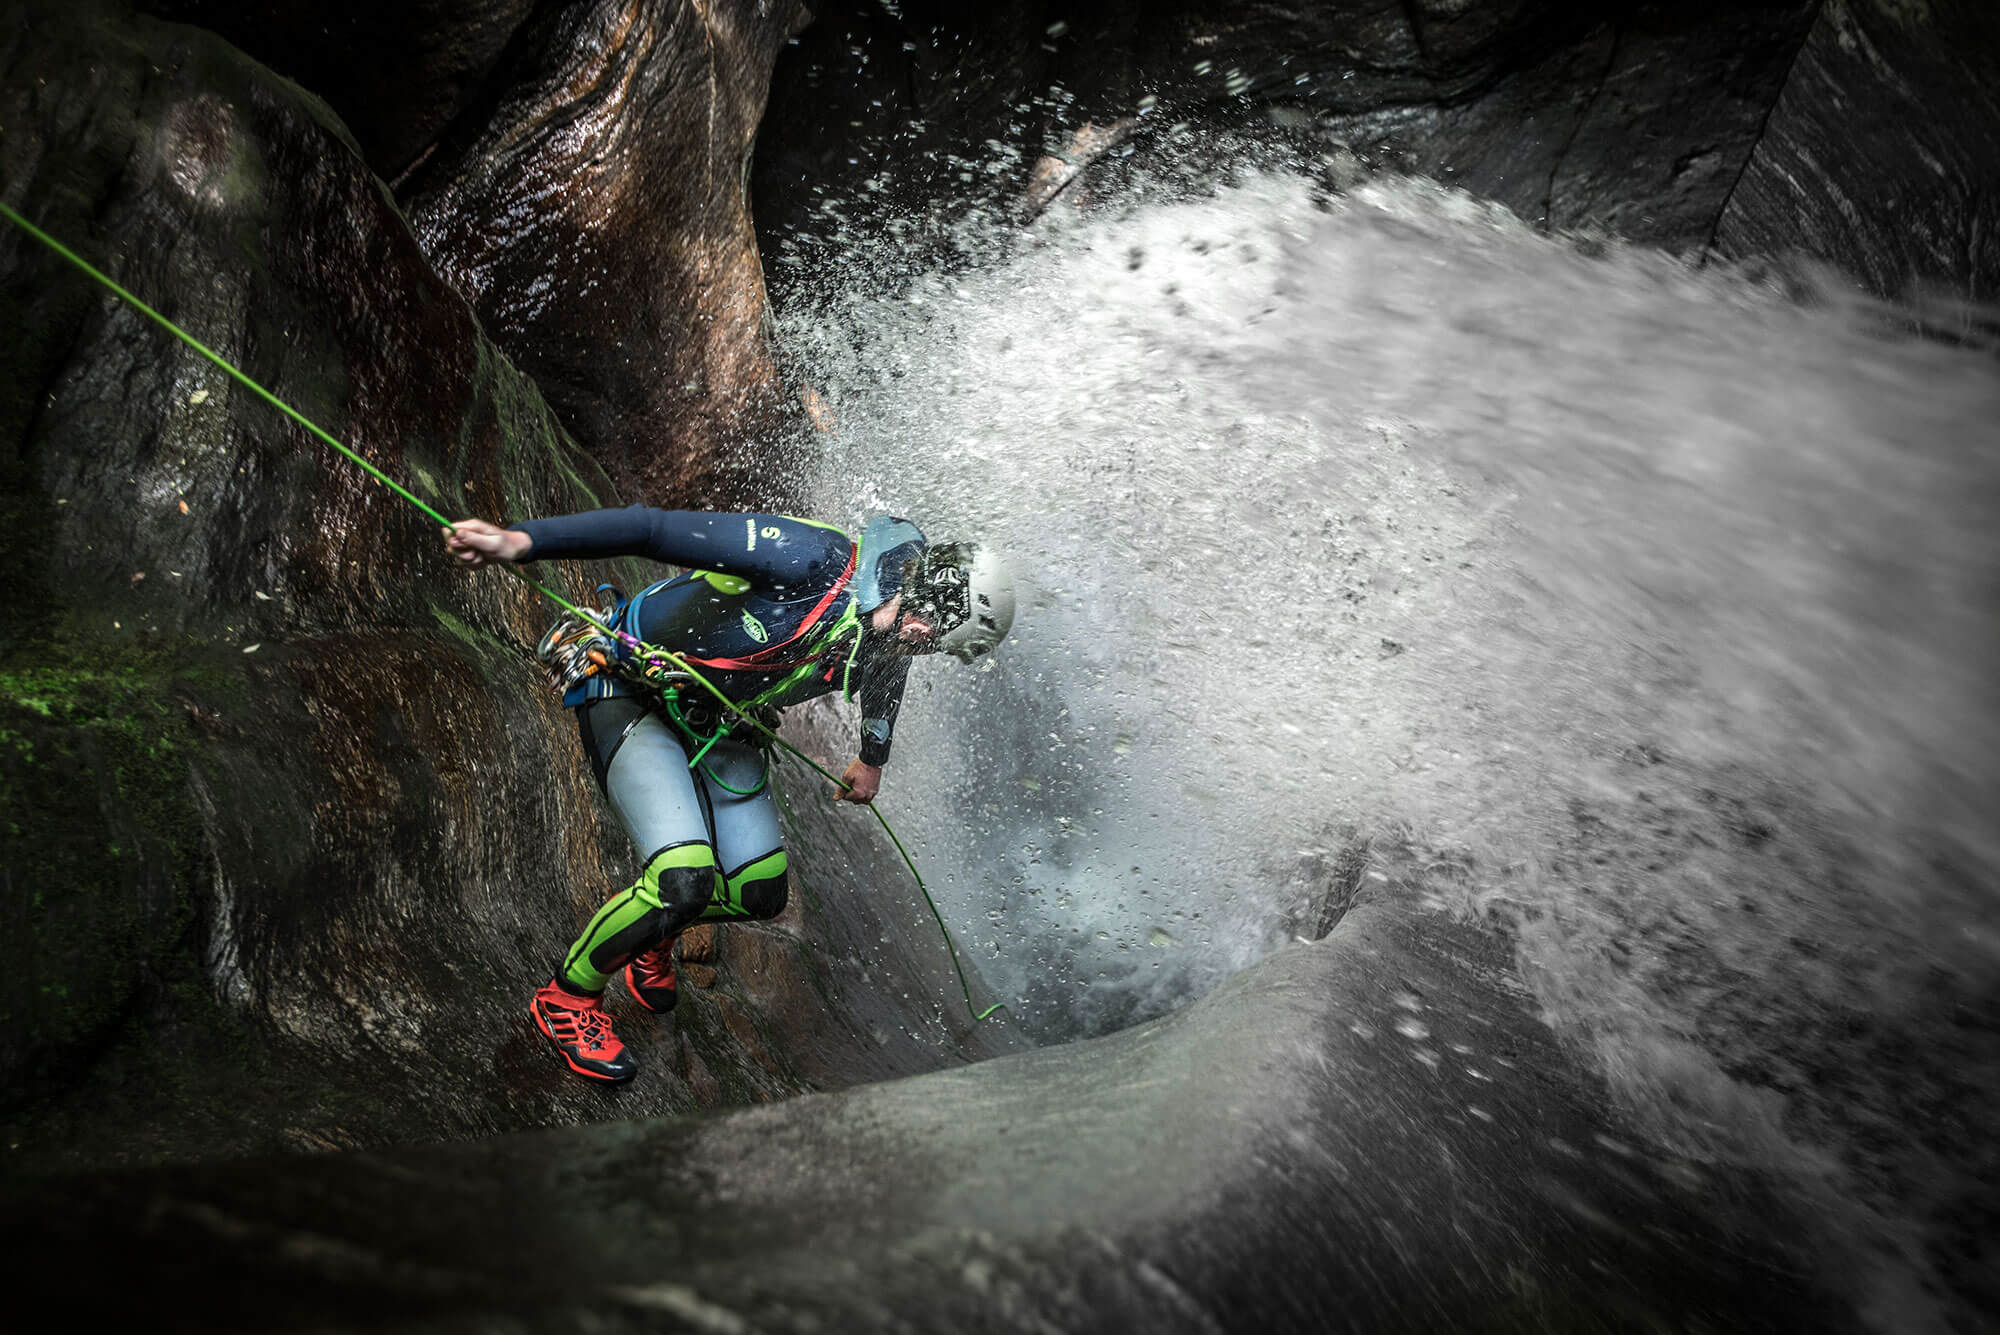 Rappelling in the canyon in New Zealand